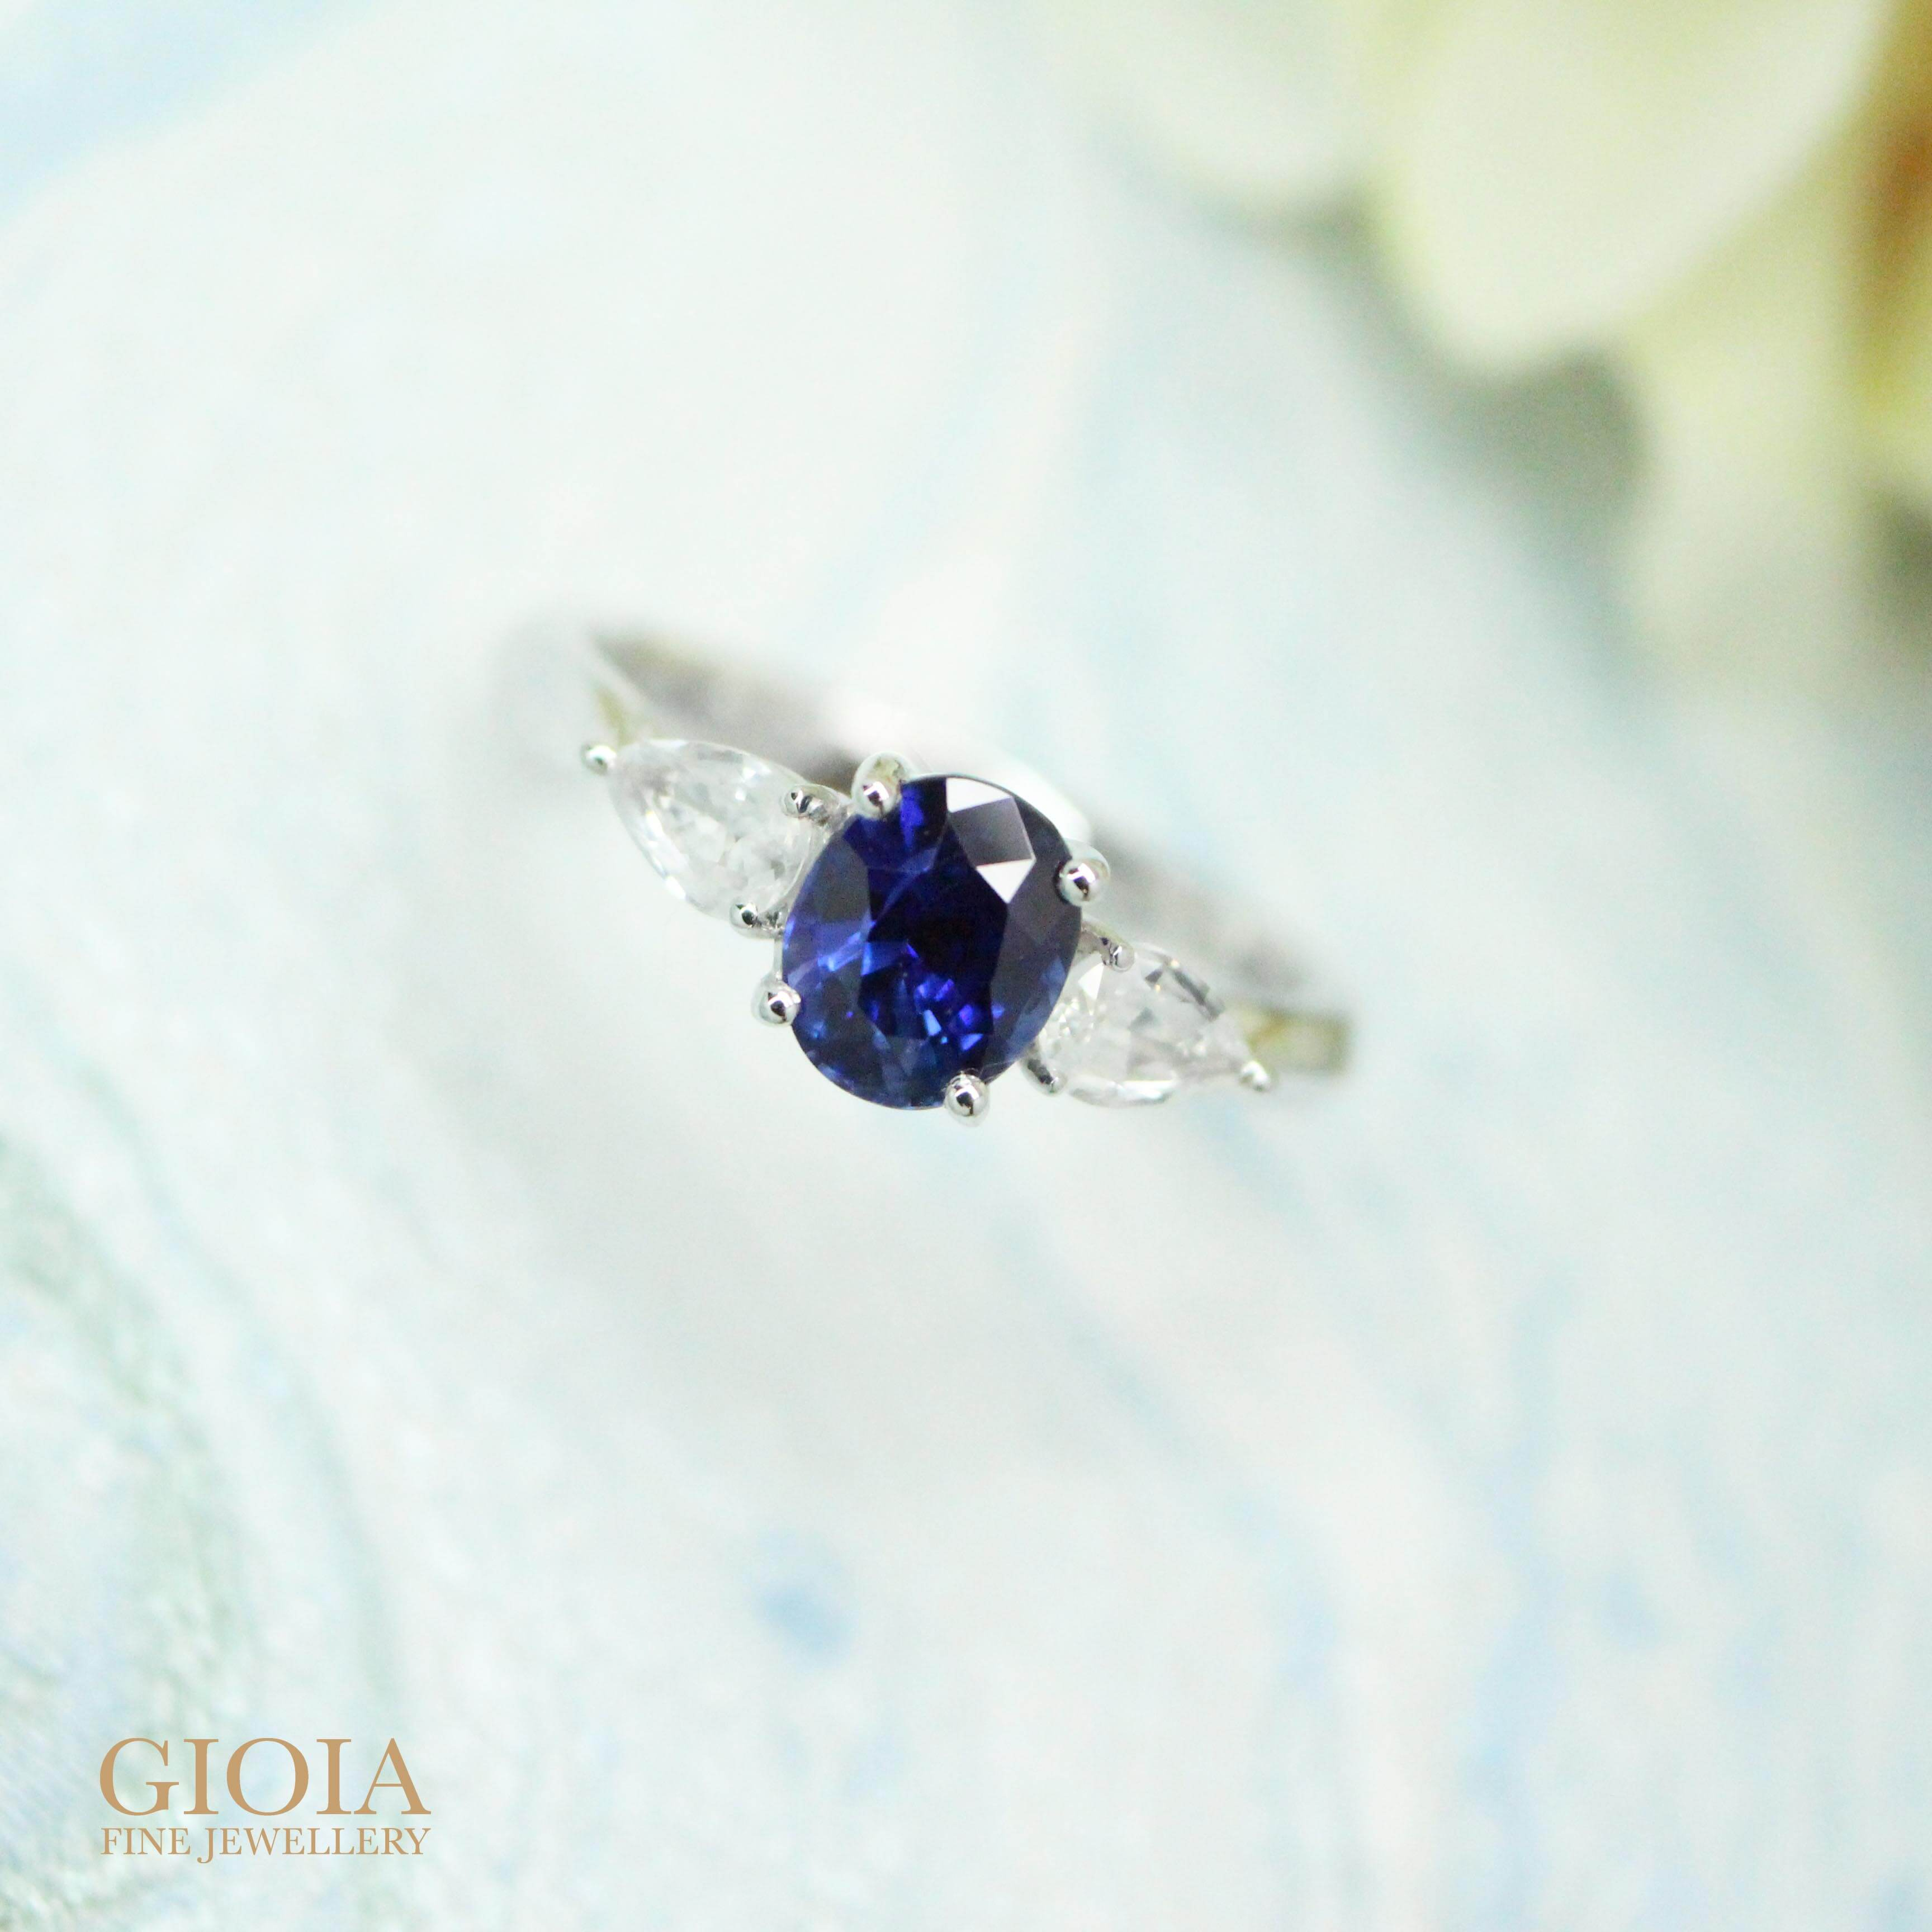 Royal blue unheated sapphire with white sapphire wedding ring   Customised engagement Ring with GIOIA Fine Jewellery